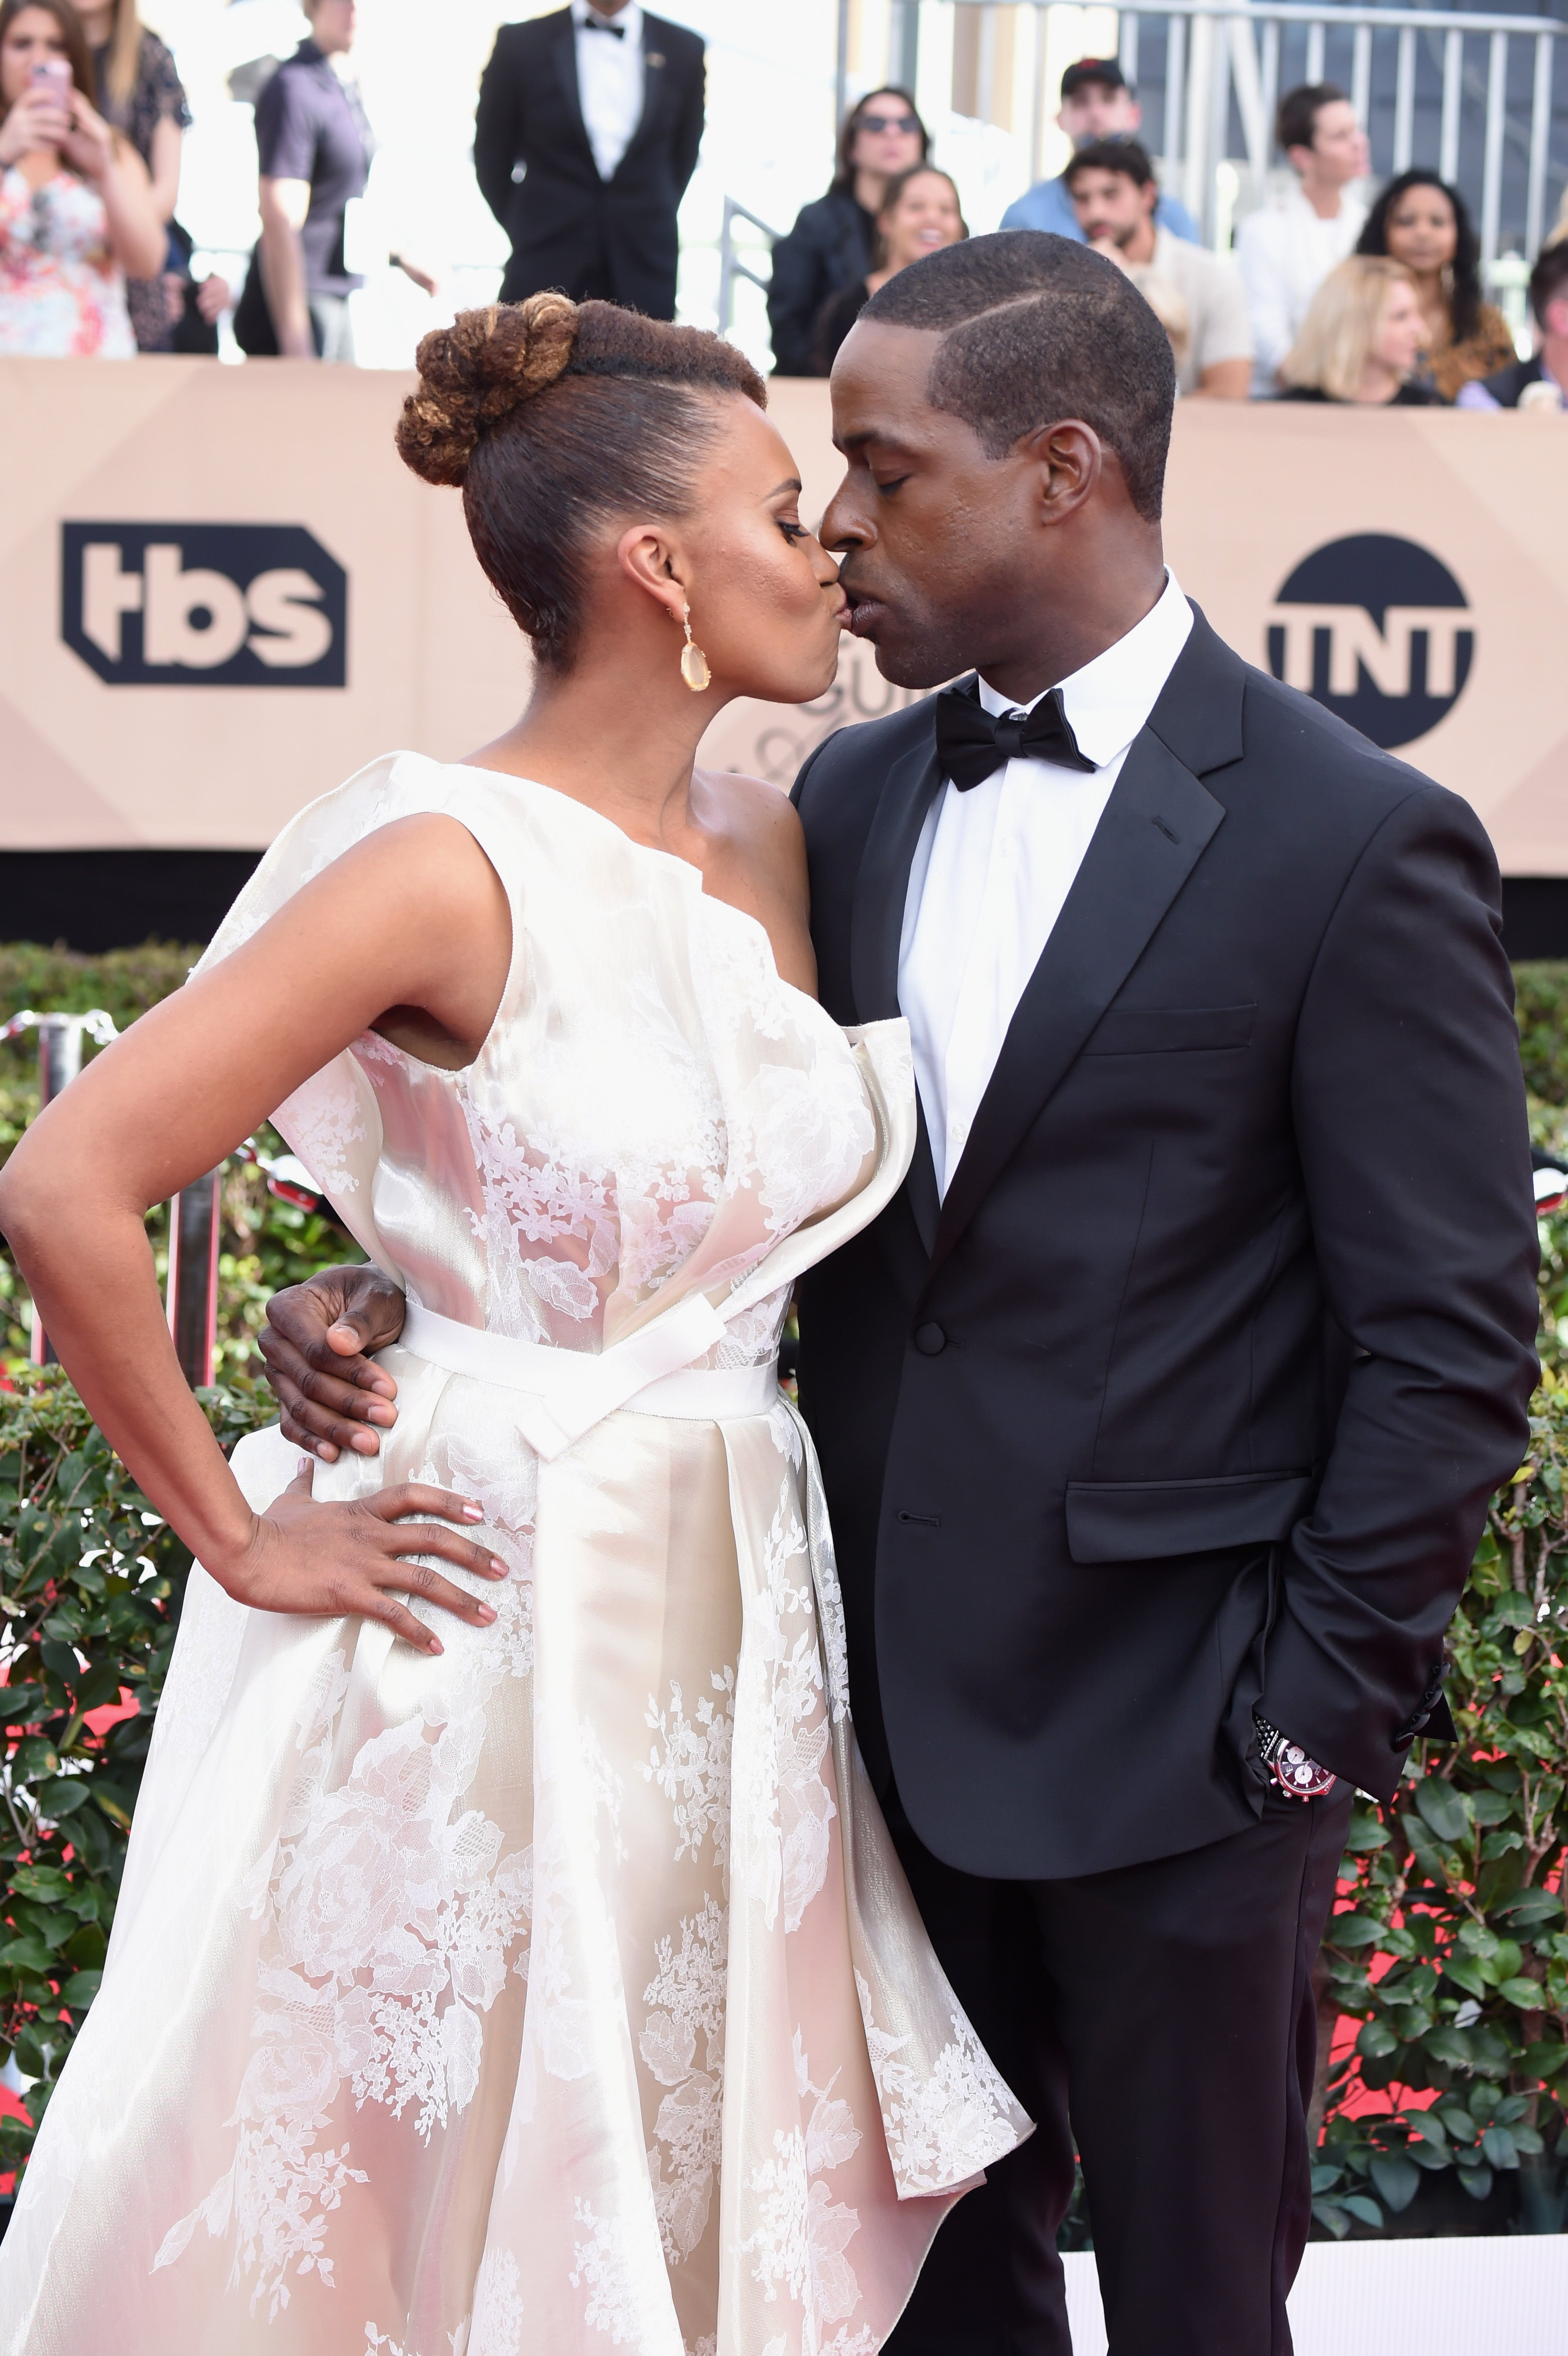 The Glue That Holds 'This Is Us' Star Sterling K. Brown and Wife Ryan Michelle Bathe Together